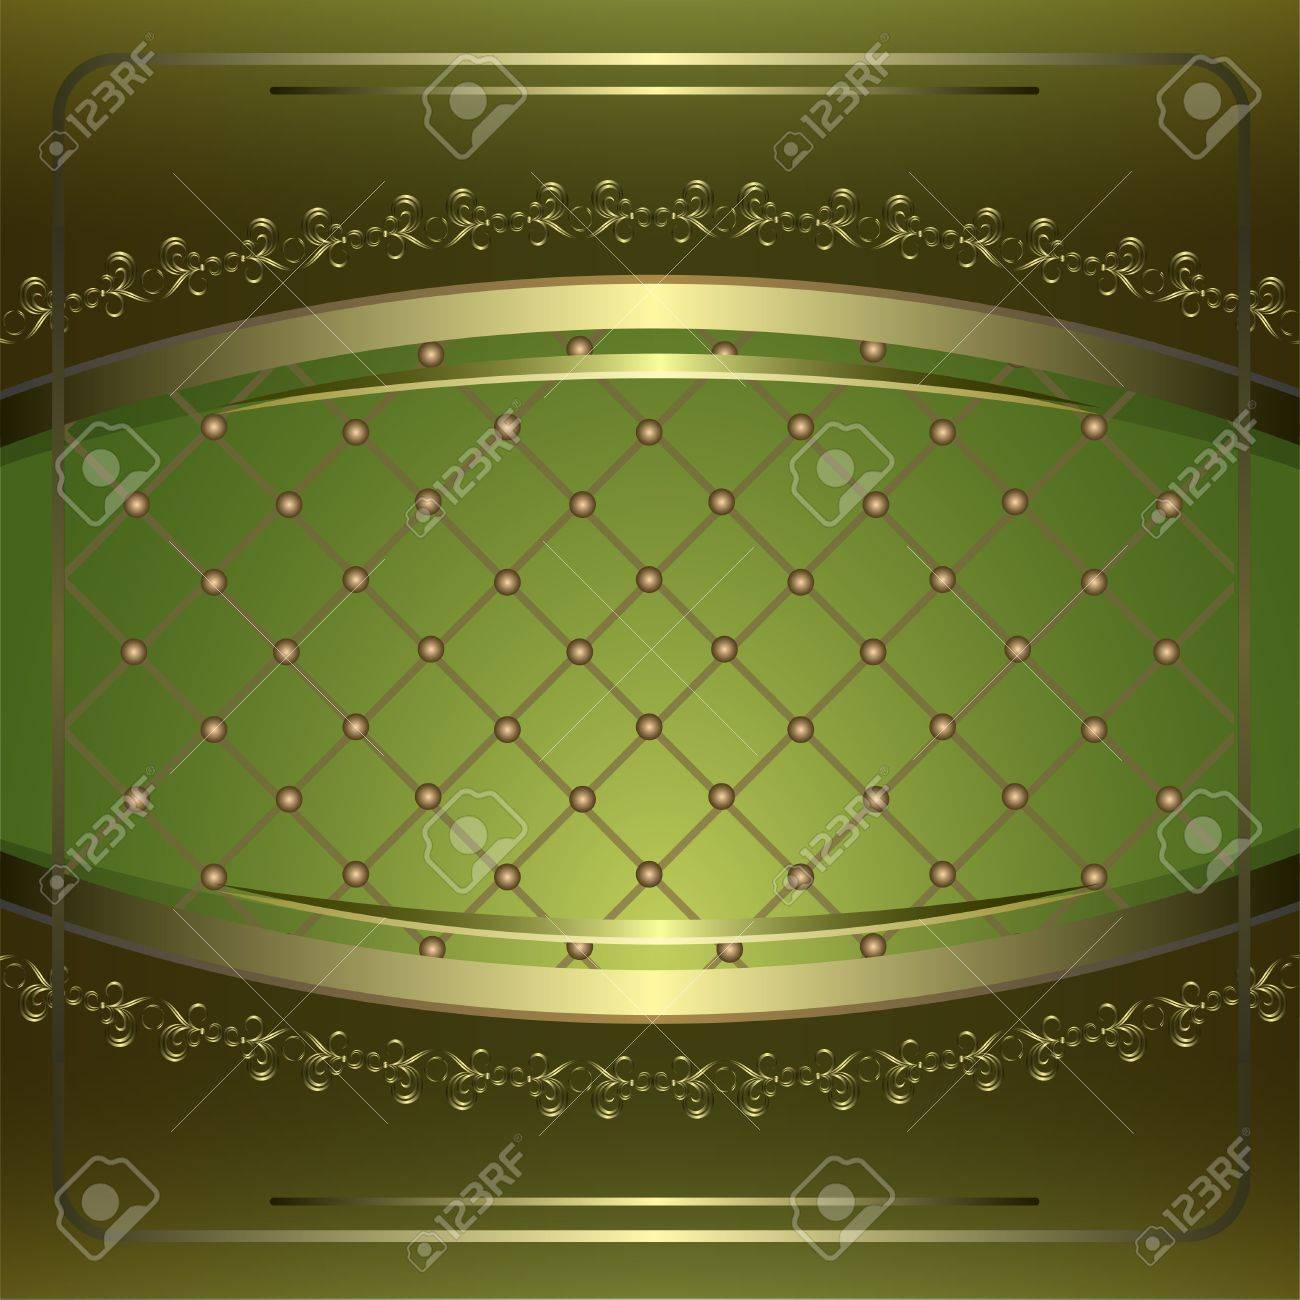 Vintage background with golden patterns. Stock Vector - 13913222